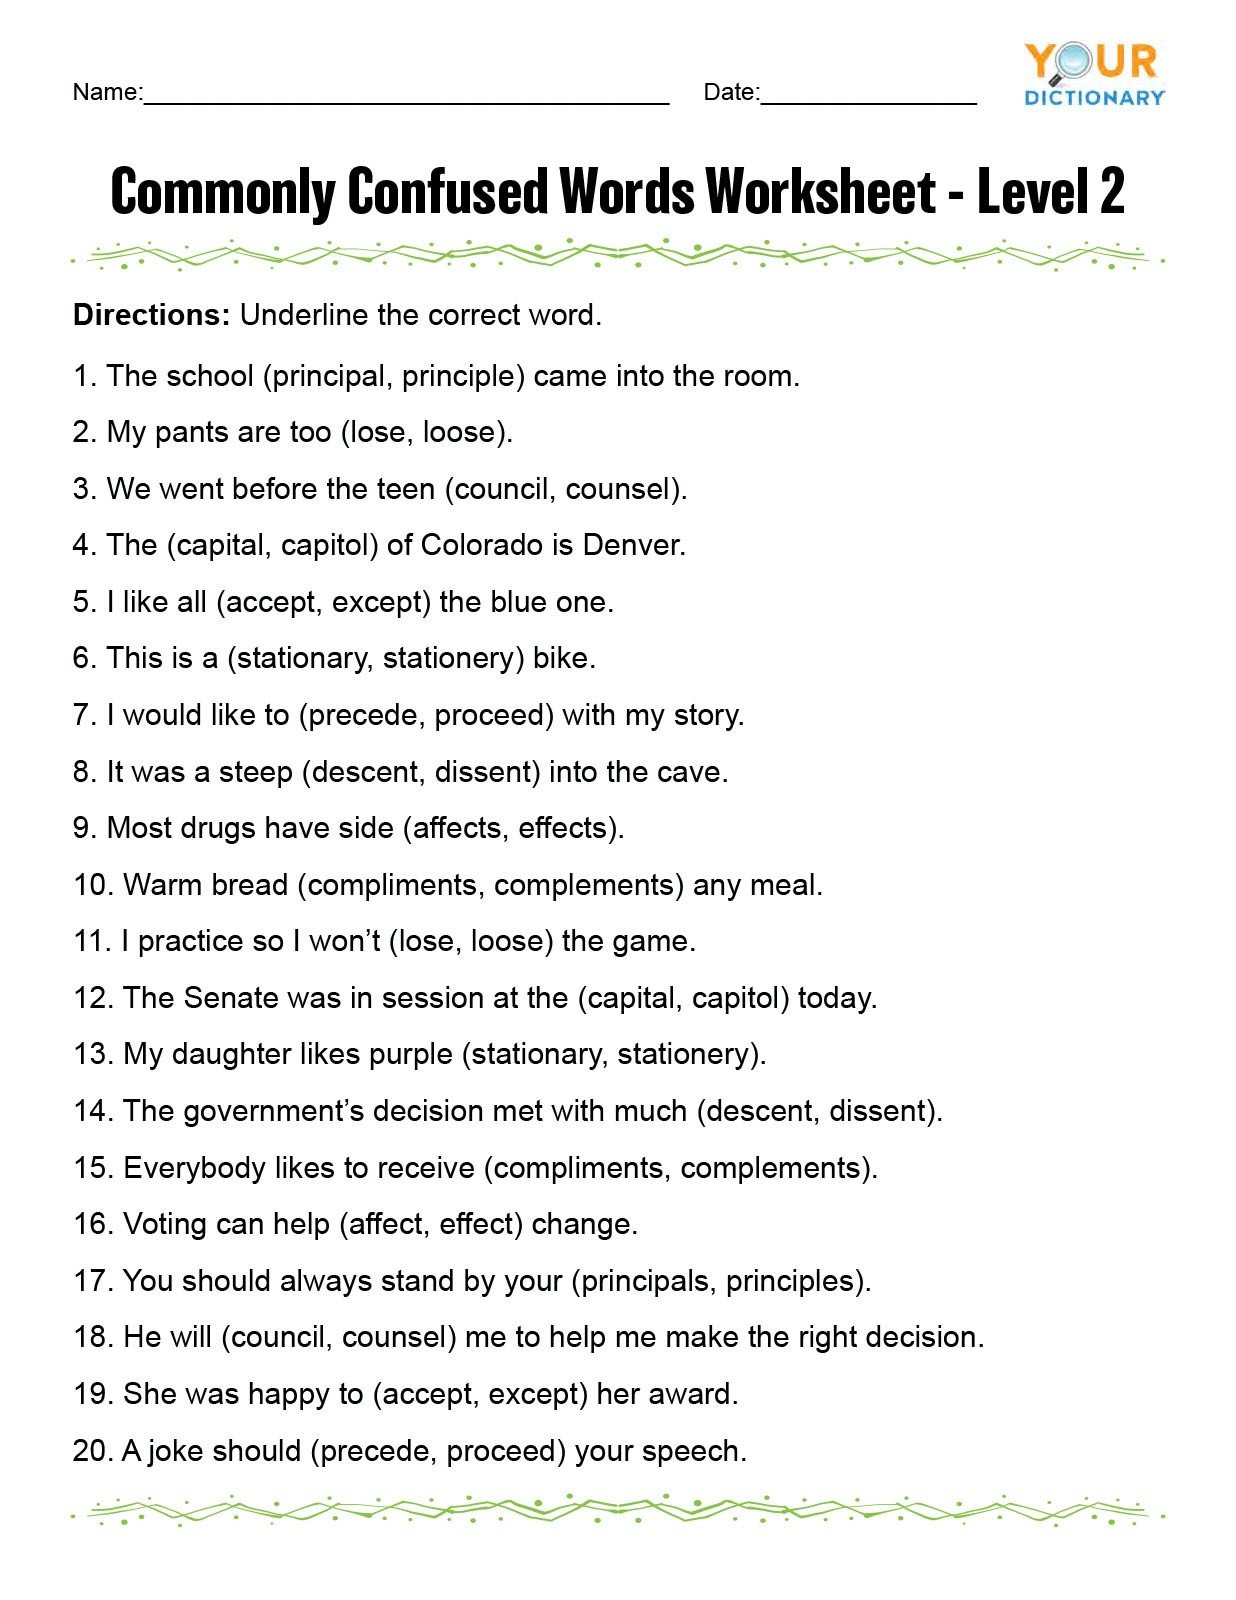 monly confused words worksheet2se